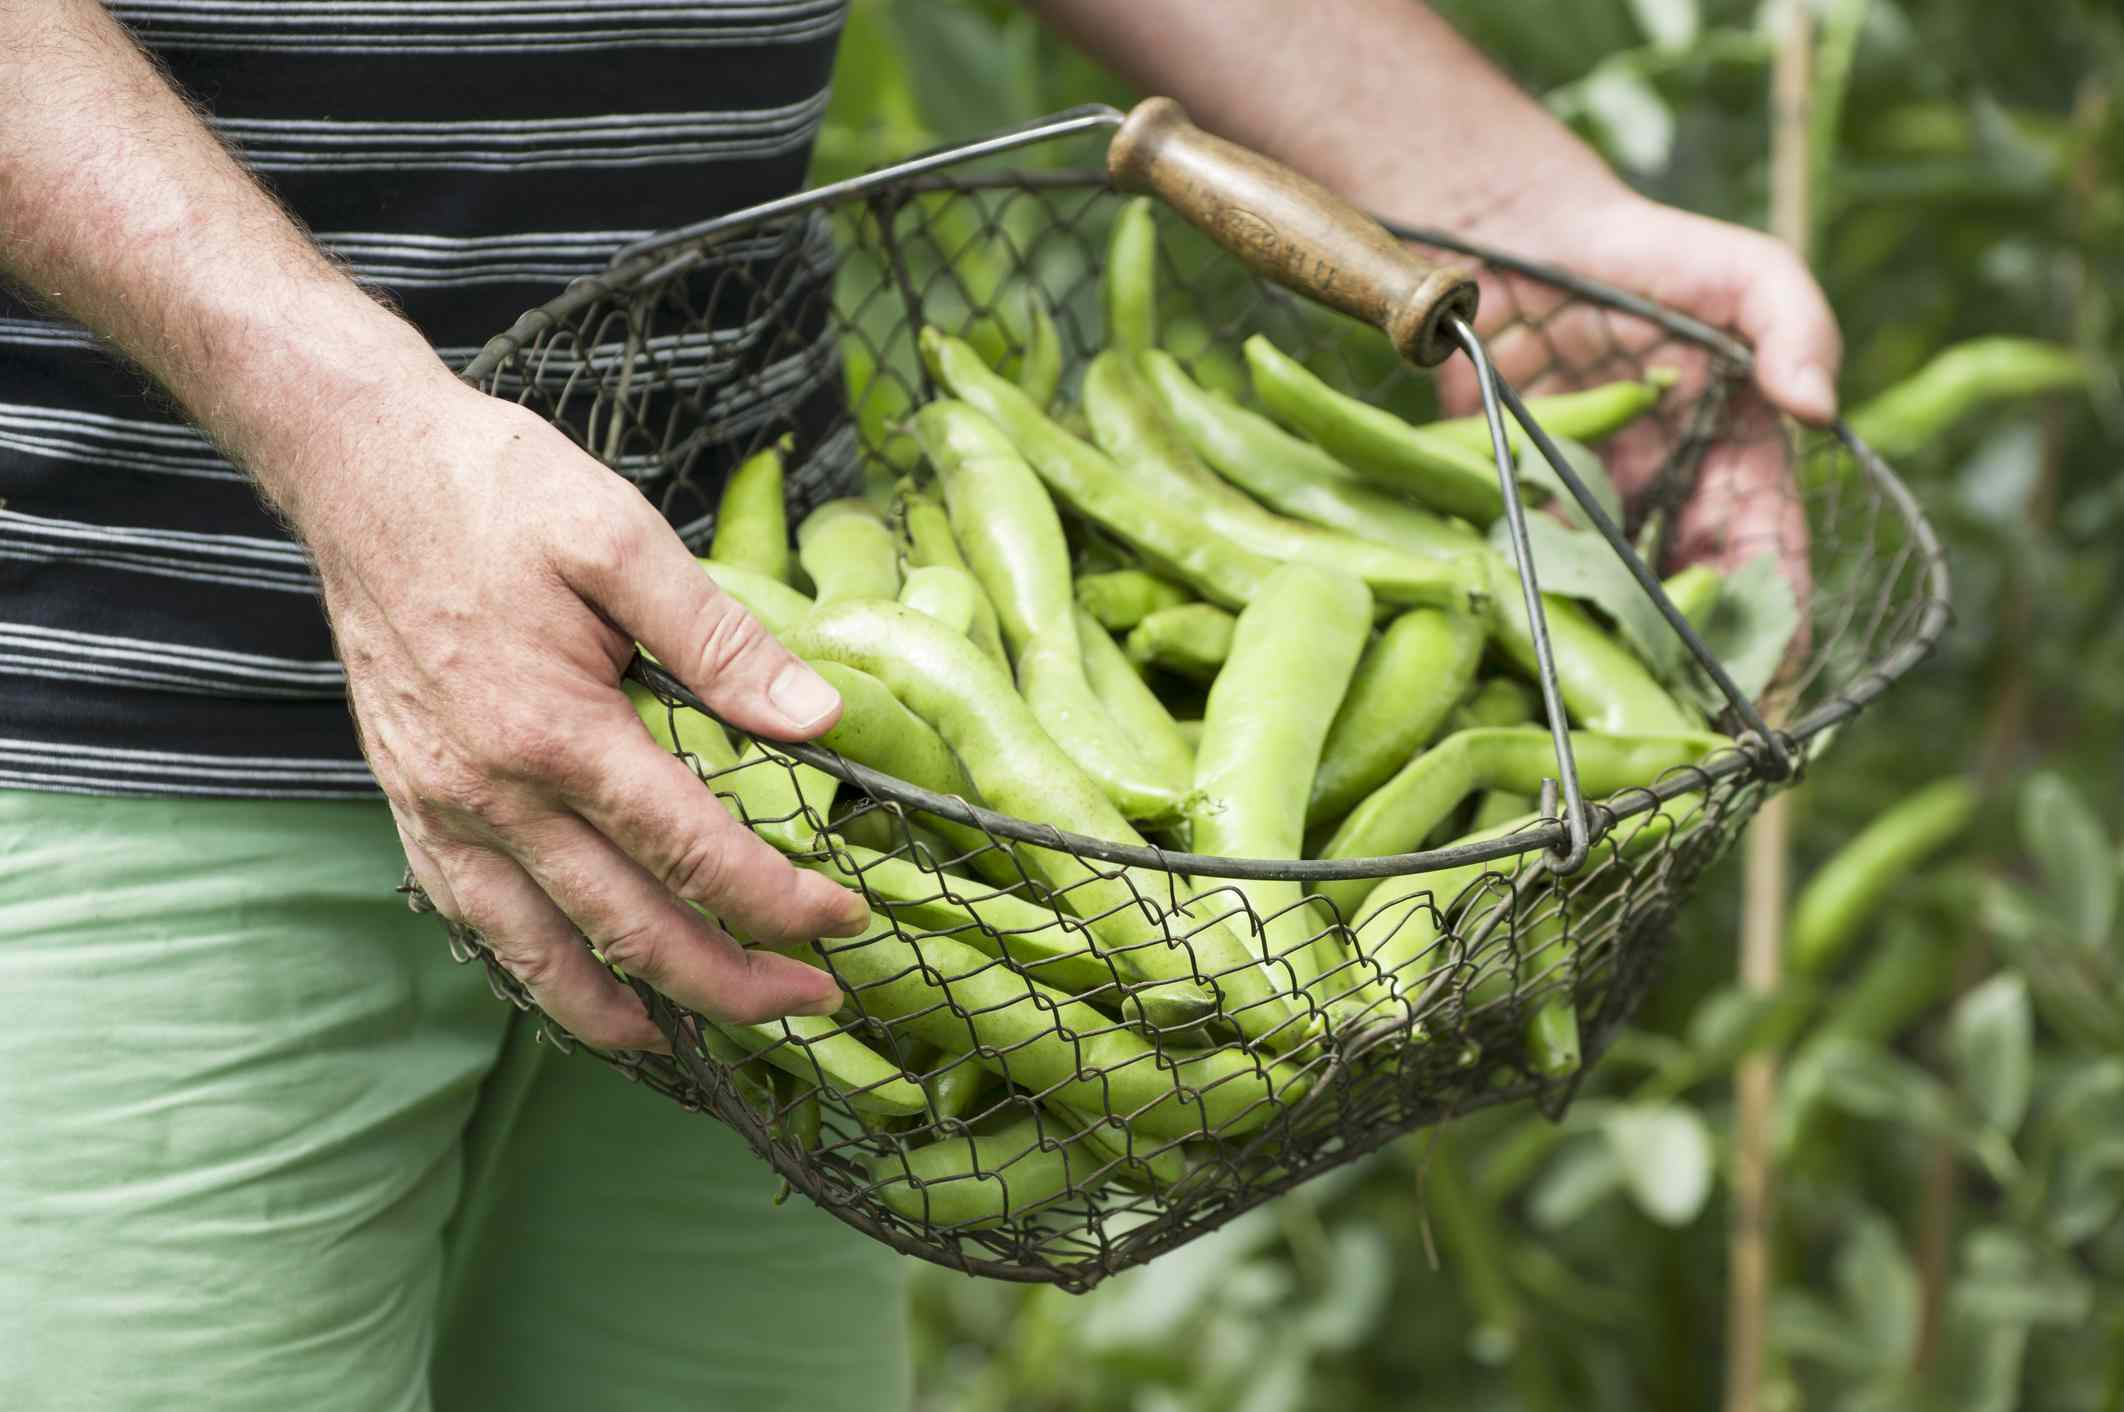 Harvested fava beans in a basket